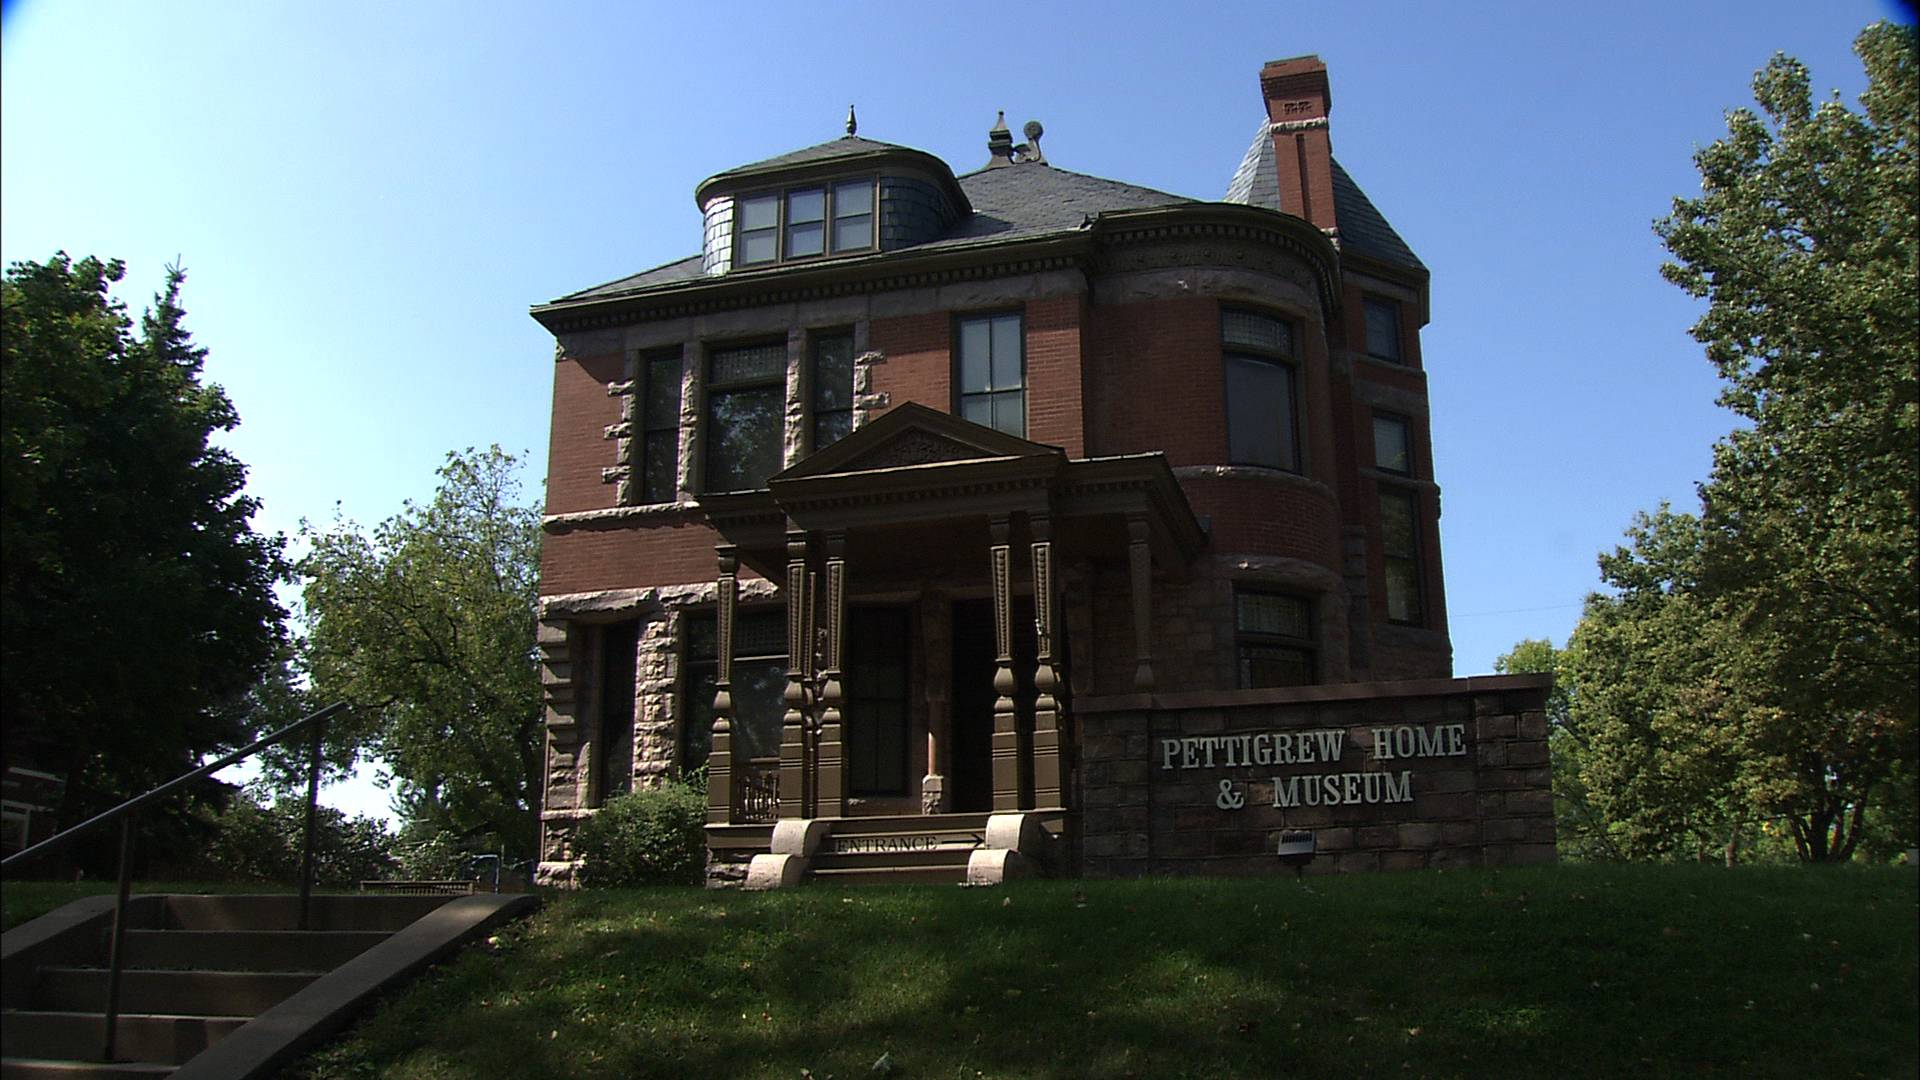 The Pettigrew Home & Museum in Sioux Falls